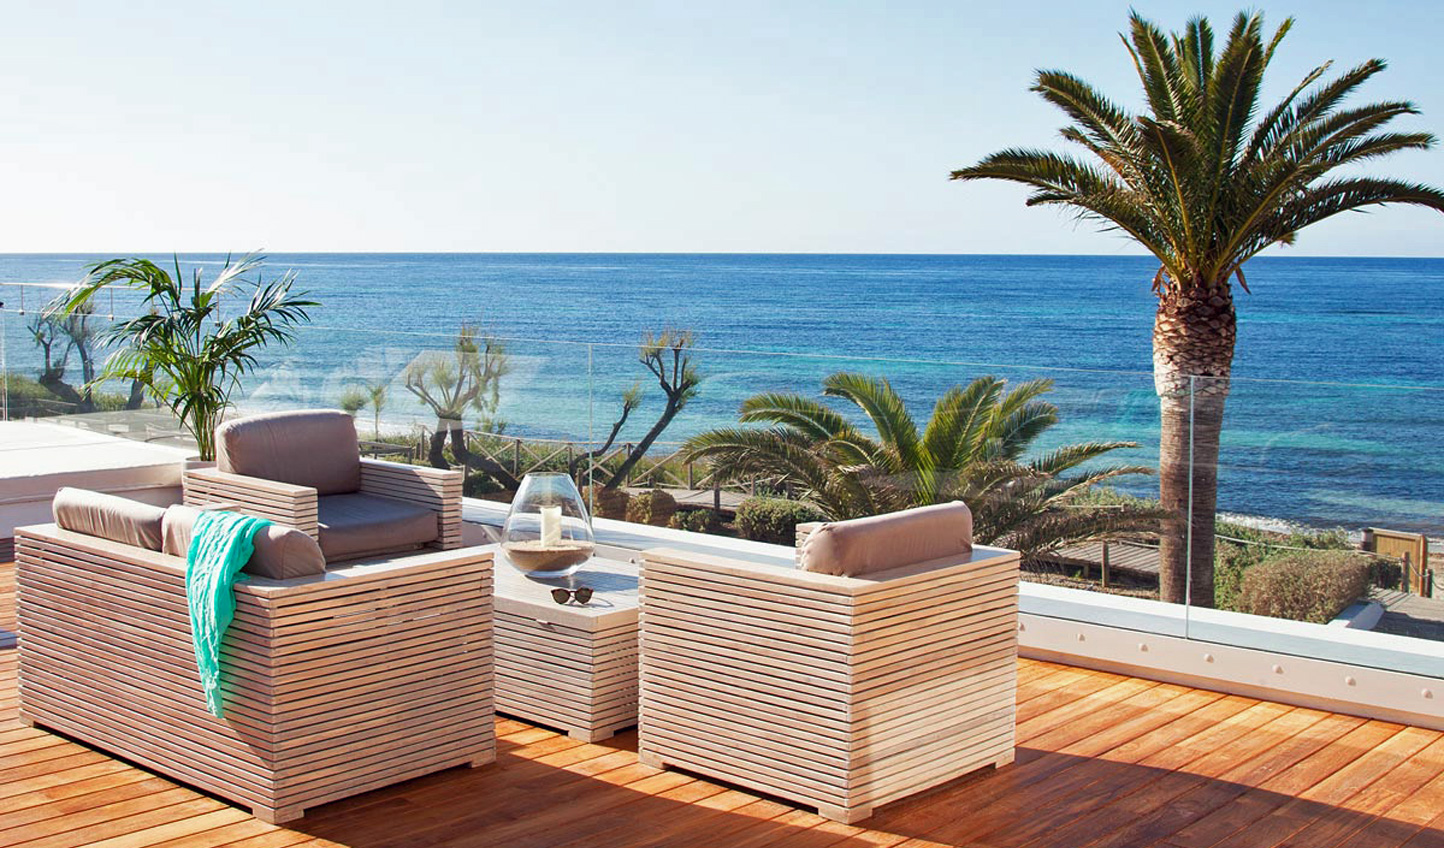 Your private terrace from which to enjoy the expansive views